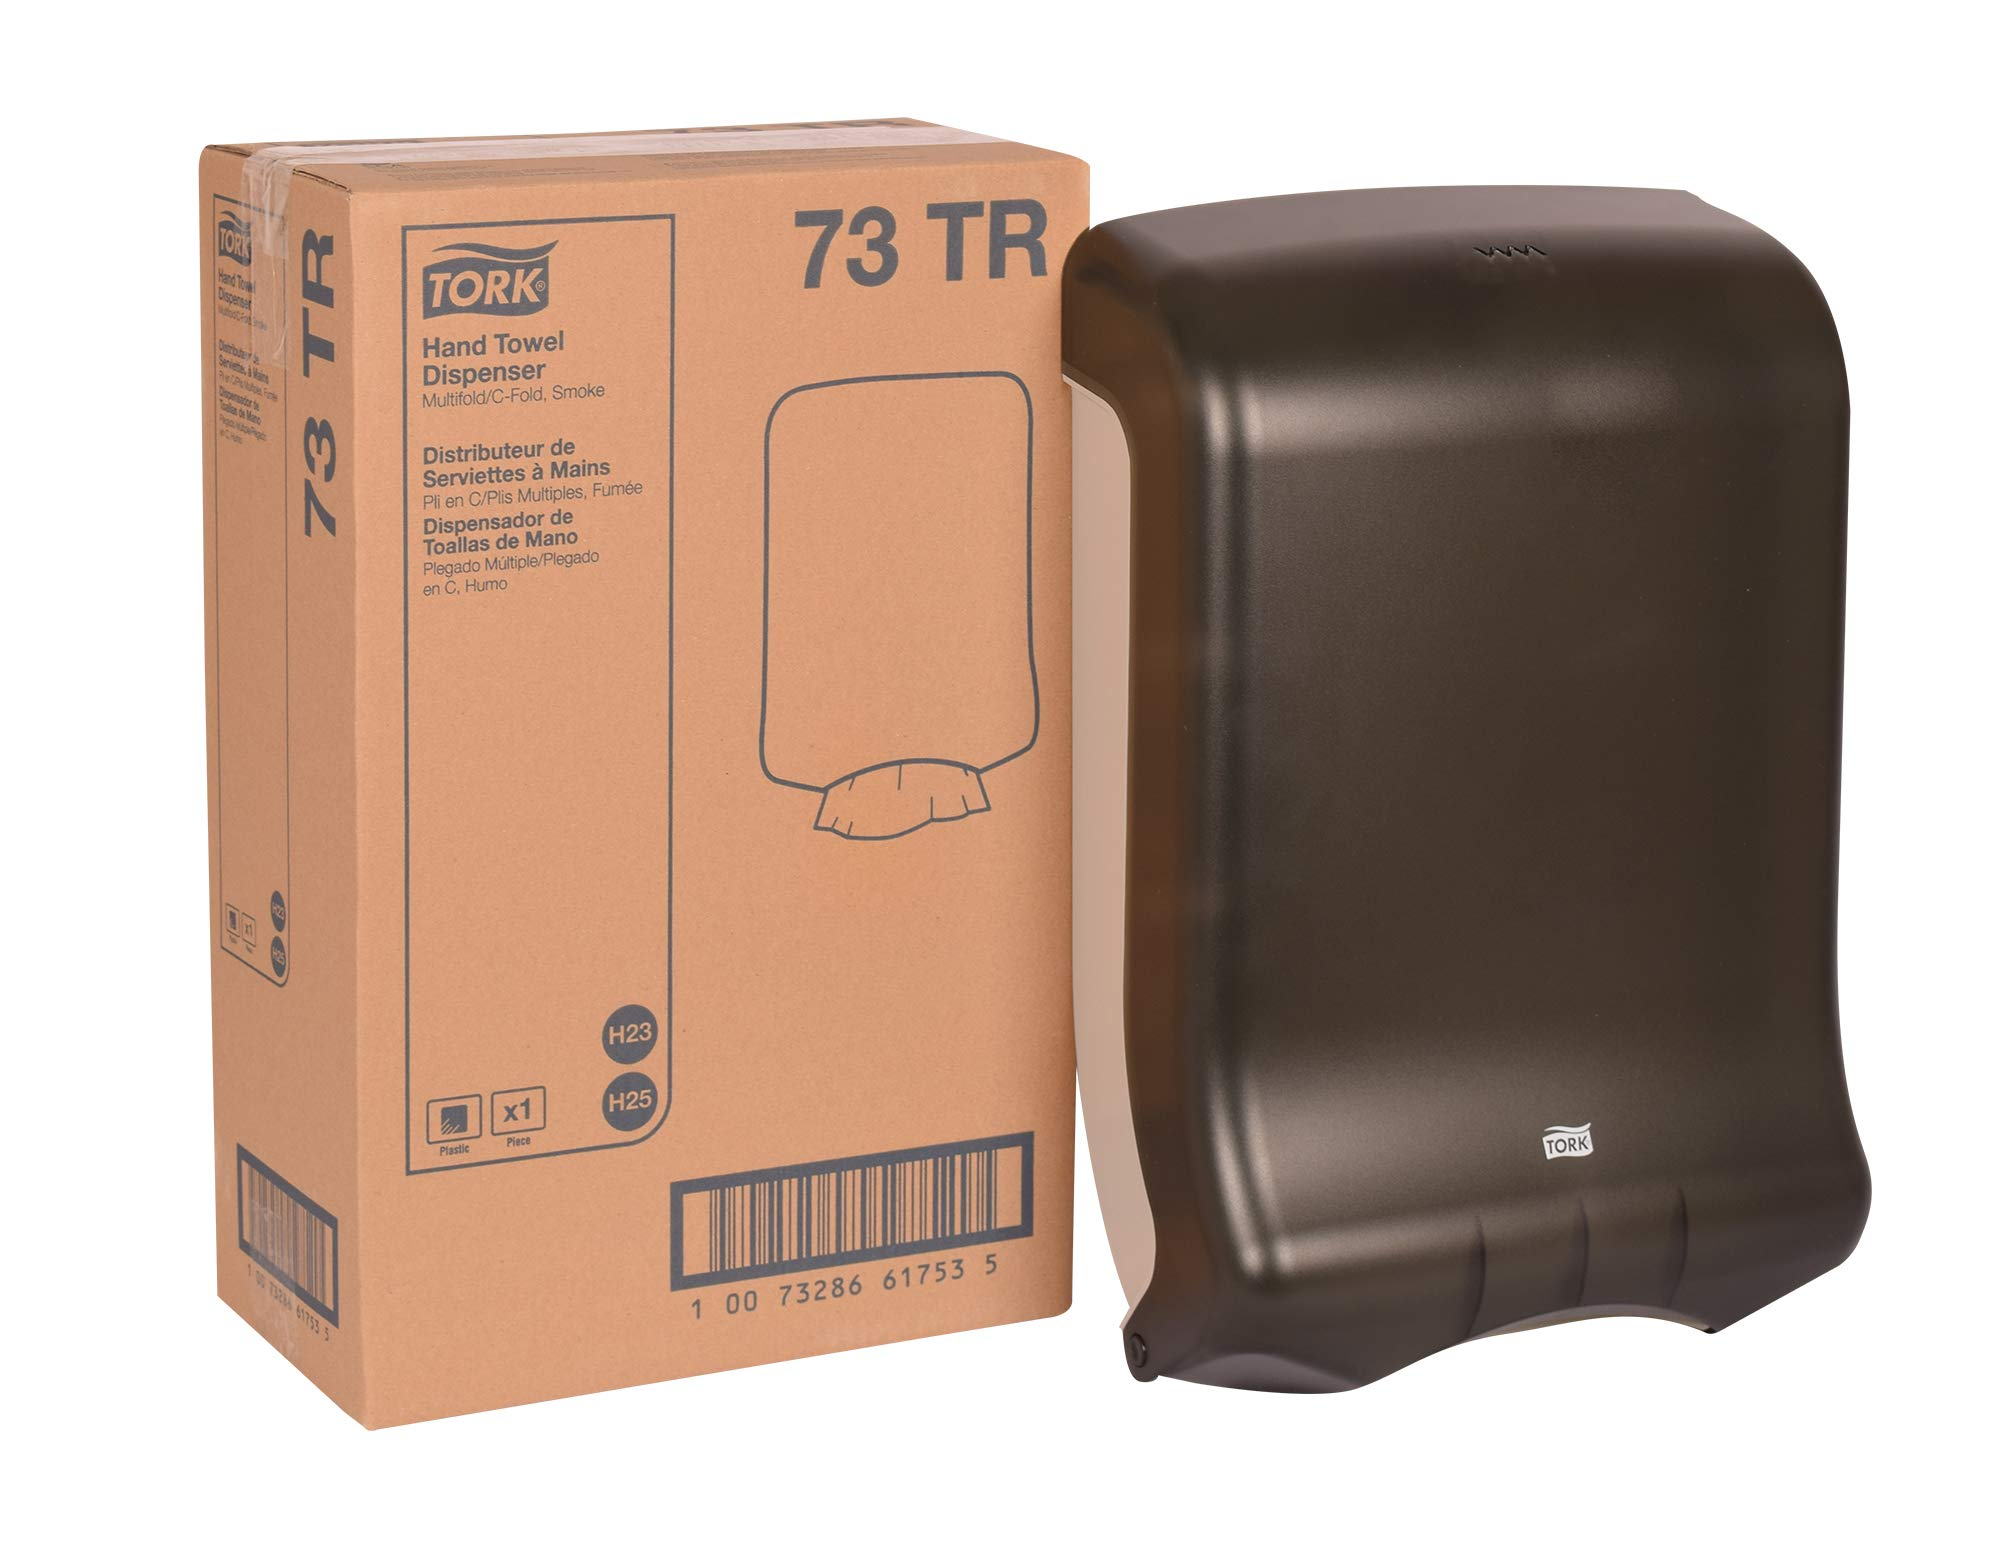 Tork 73TR Multifold and C-Fold Hand Towel Dispenser, Plastic, 18'' Height x 11.75'' Width x 6.25'' Depth, Smoke (Case of 1 Dispenser) For use with Tork CB530, MB550A and MK520A